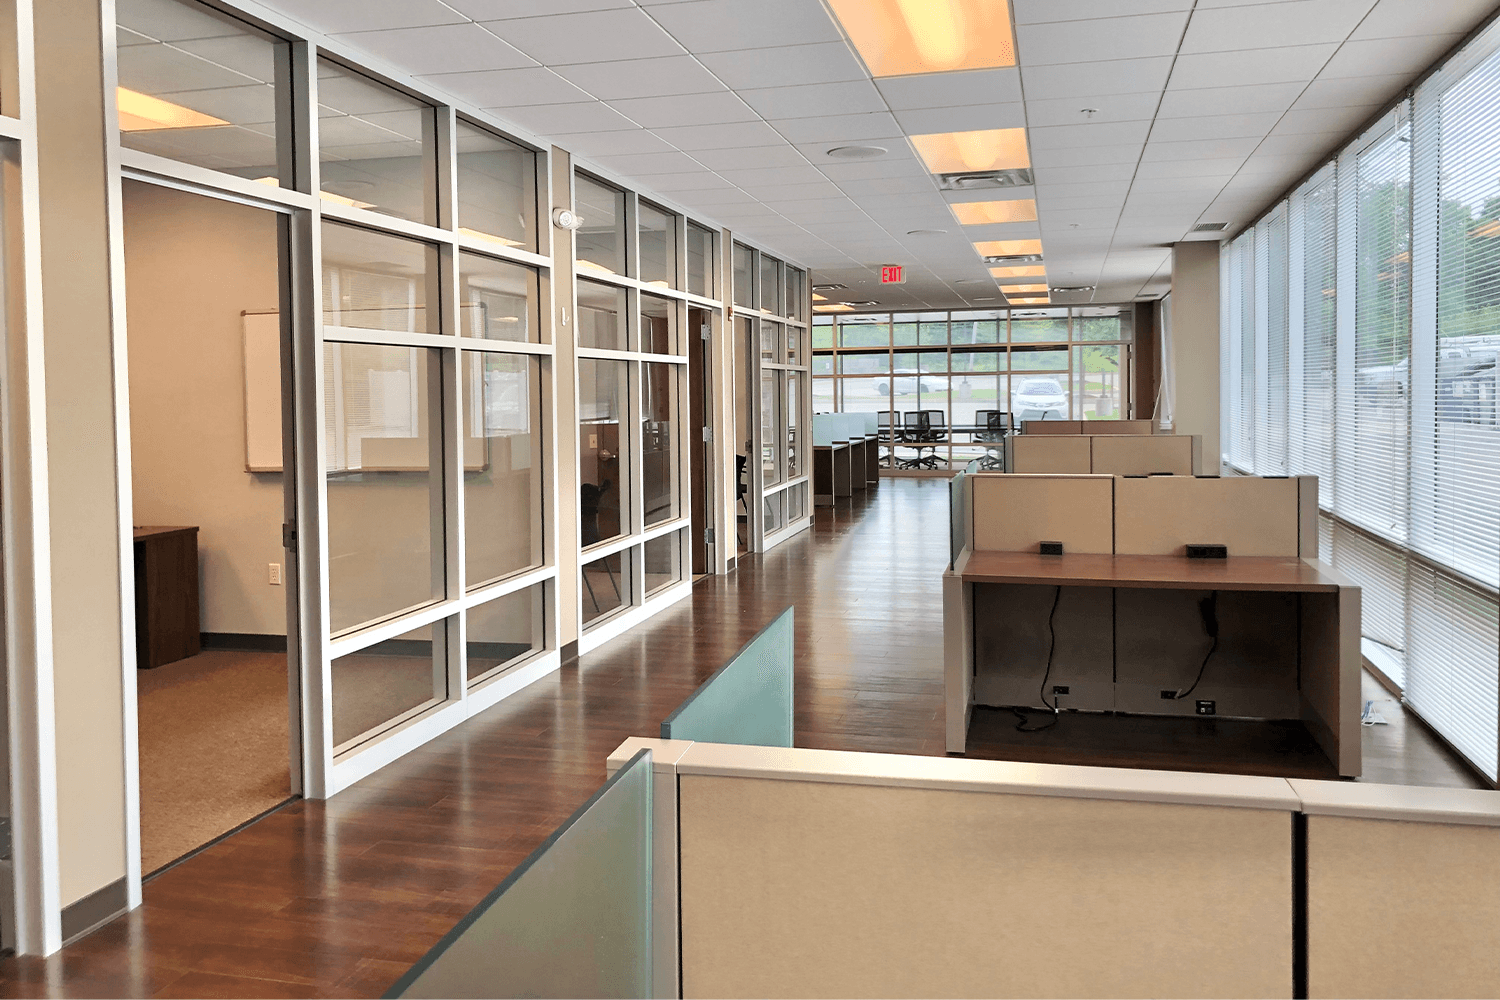 Hallway with cubicles and glass walls